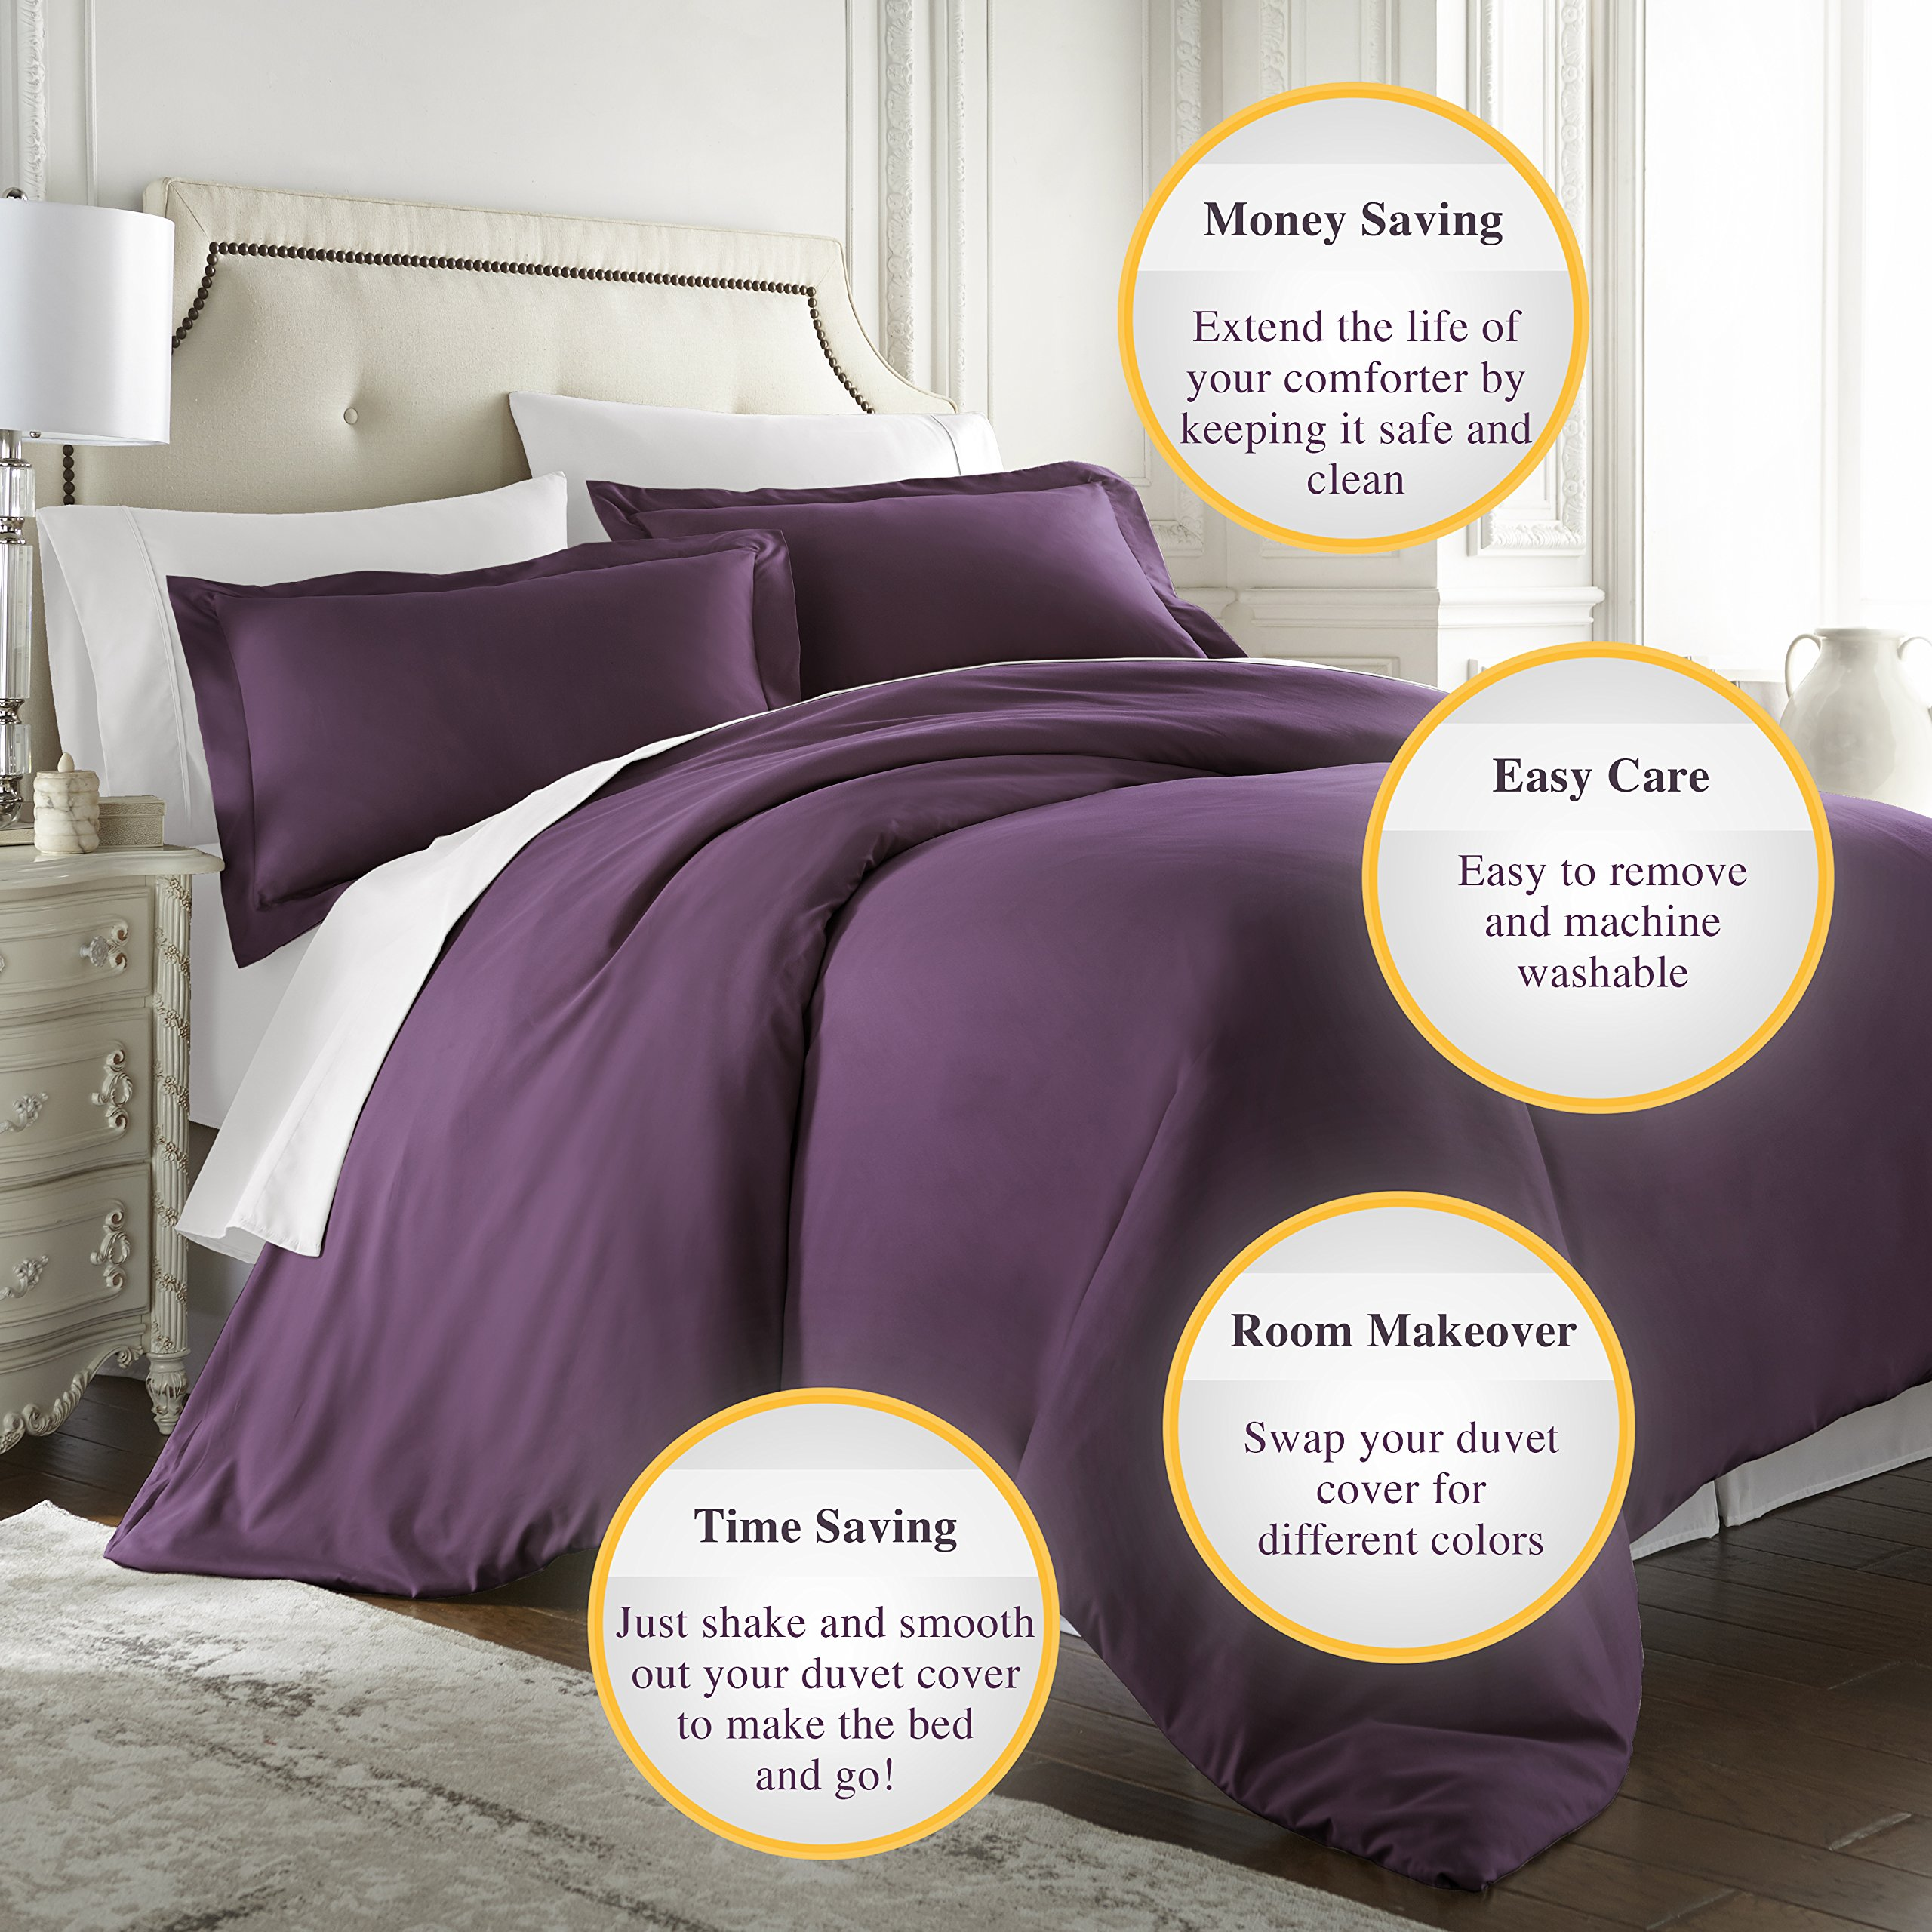 HC COLLECTION Hotel Luxury 3pc Duvet Cover Set-1500 Thread Count Egyptian Quality Ultra Silky Soft Premium Bedding Collection-King Size Eggplant by HC COLLECTION (Image #5)